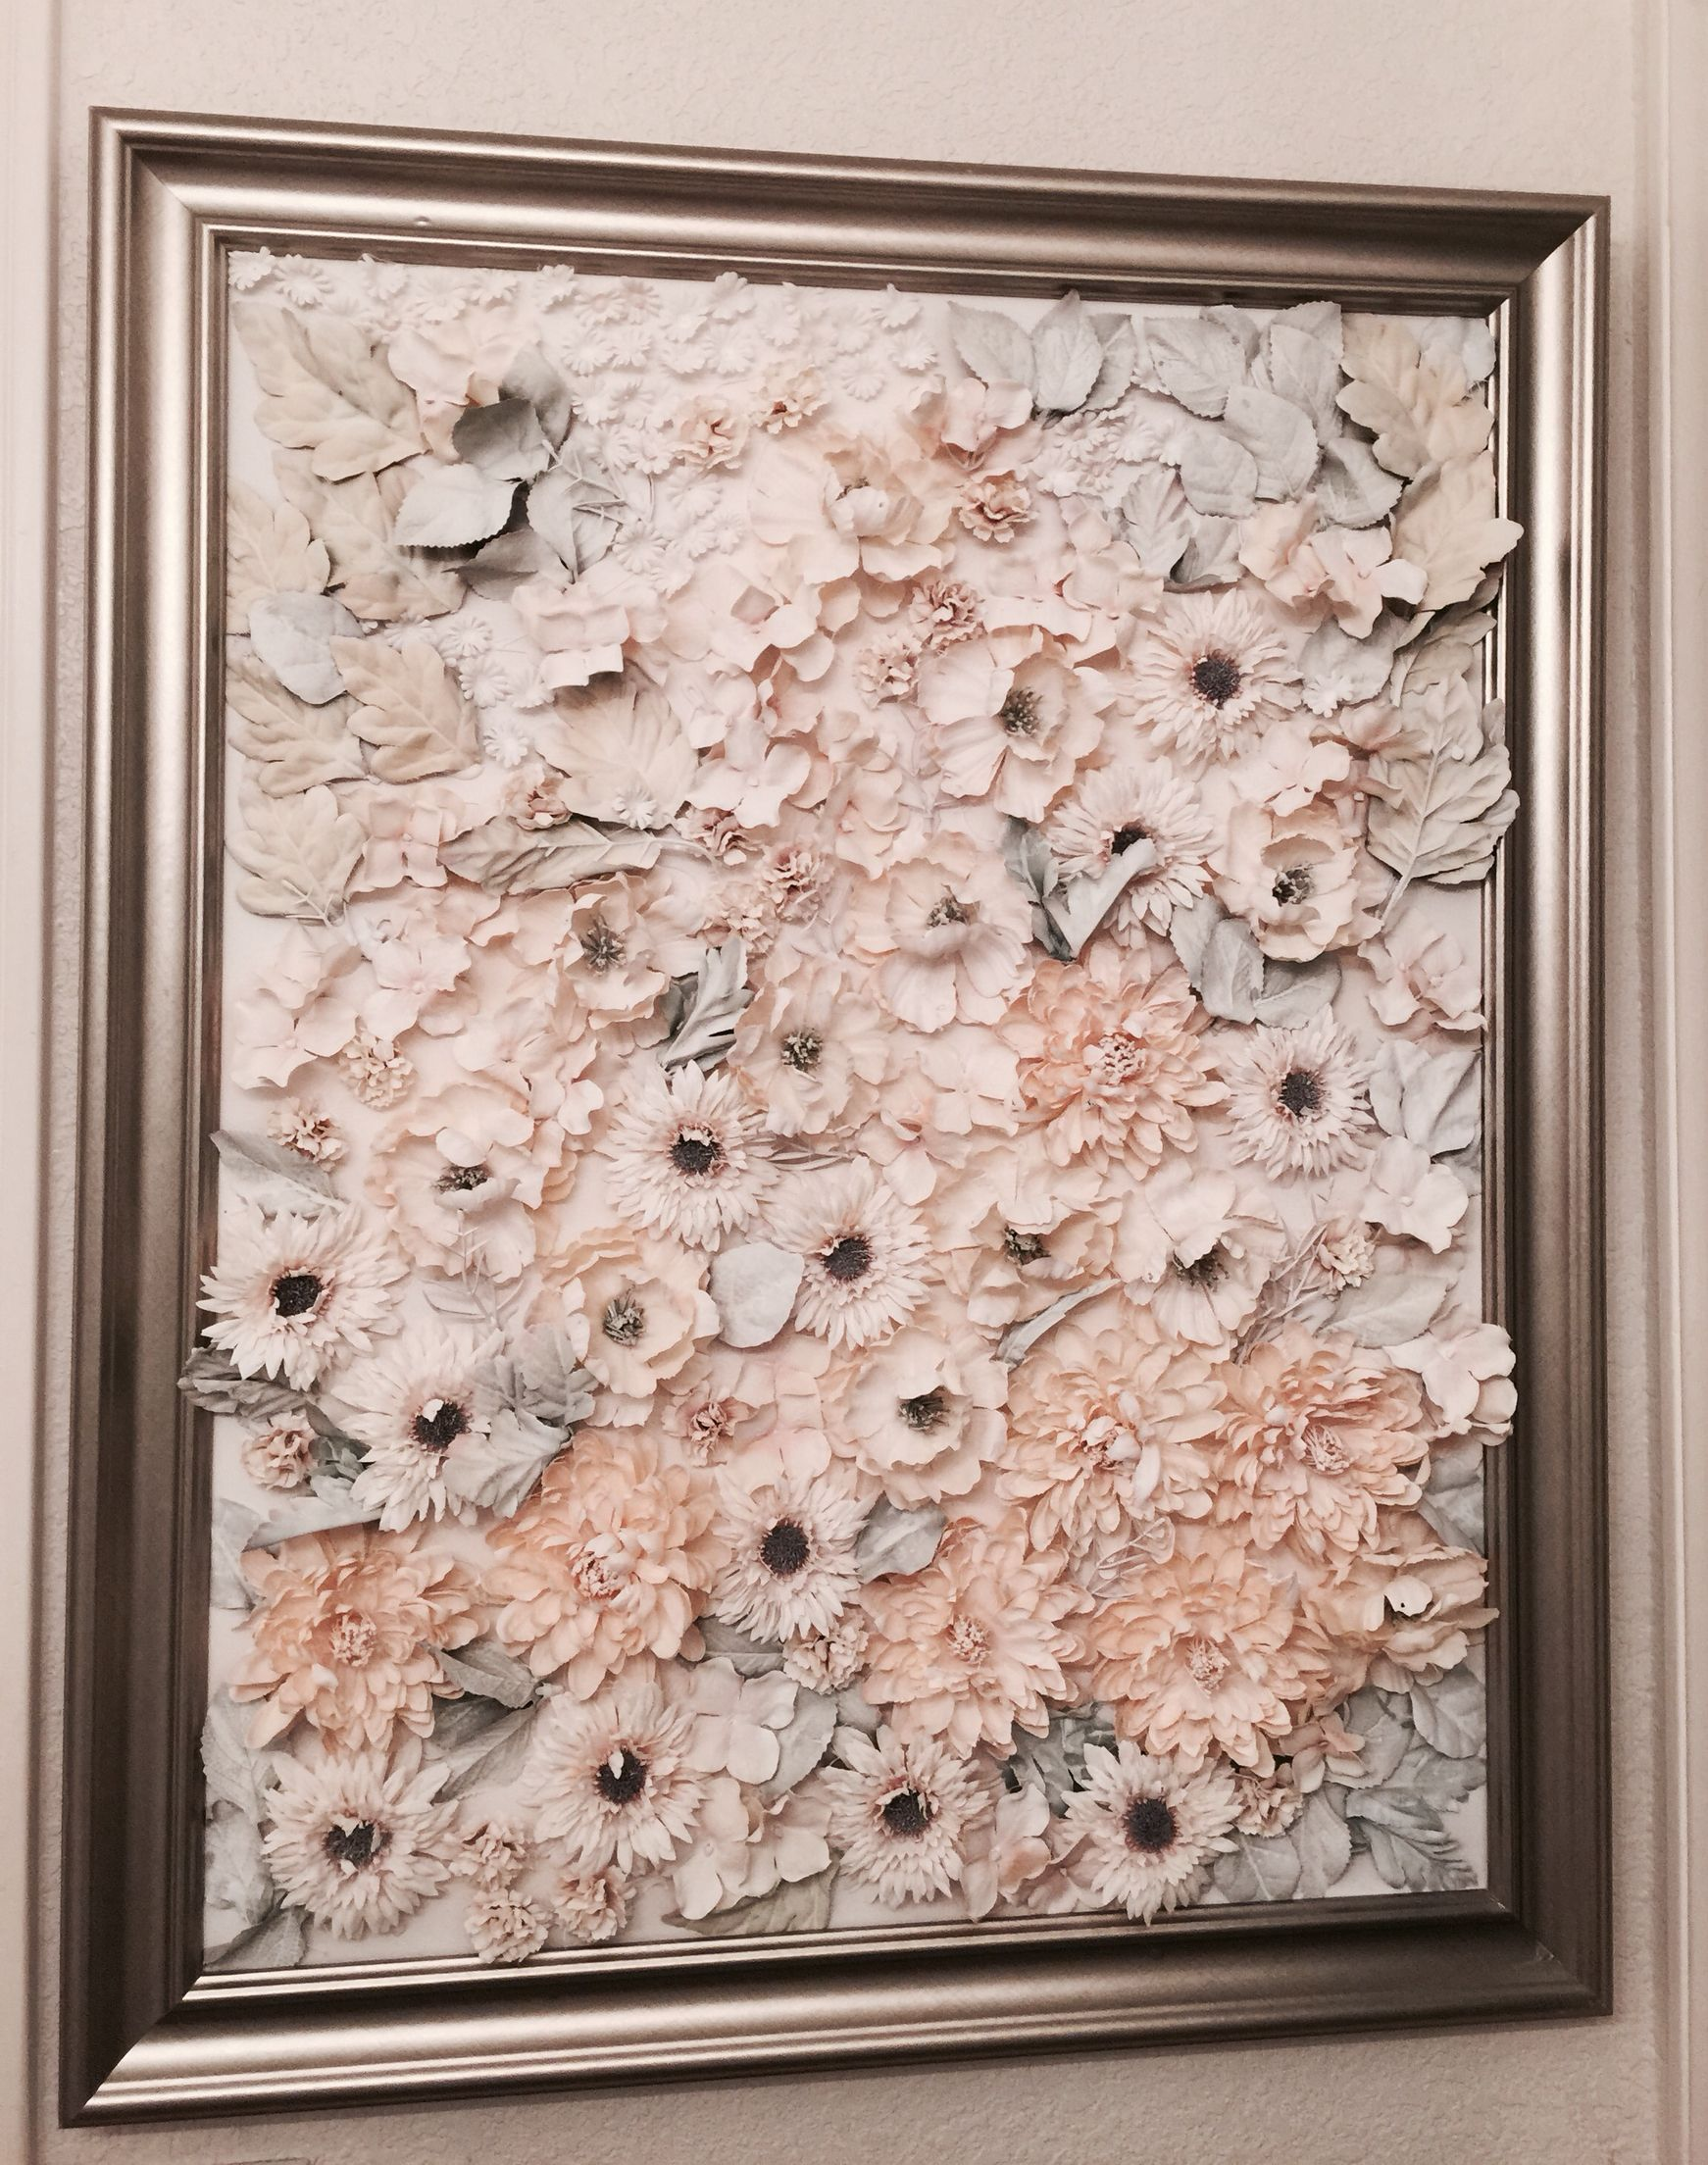 Silk Flowers, Canvas, Hot Glue, White Spray Paint, Frame